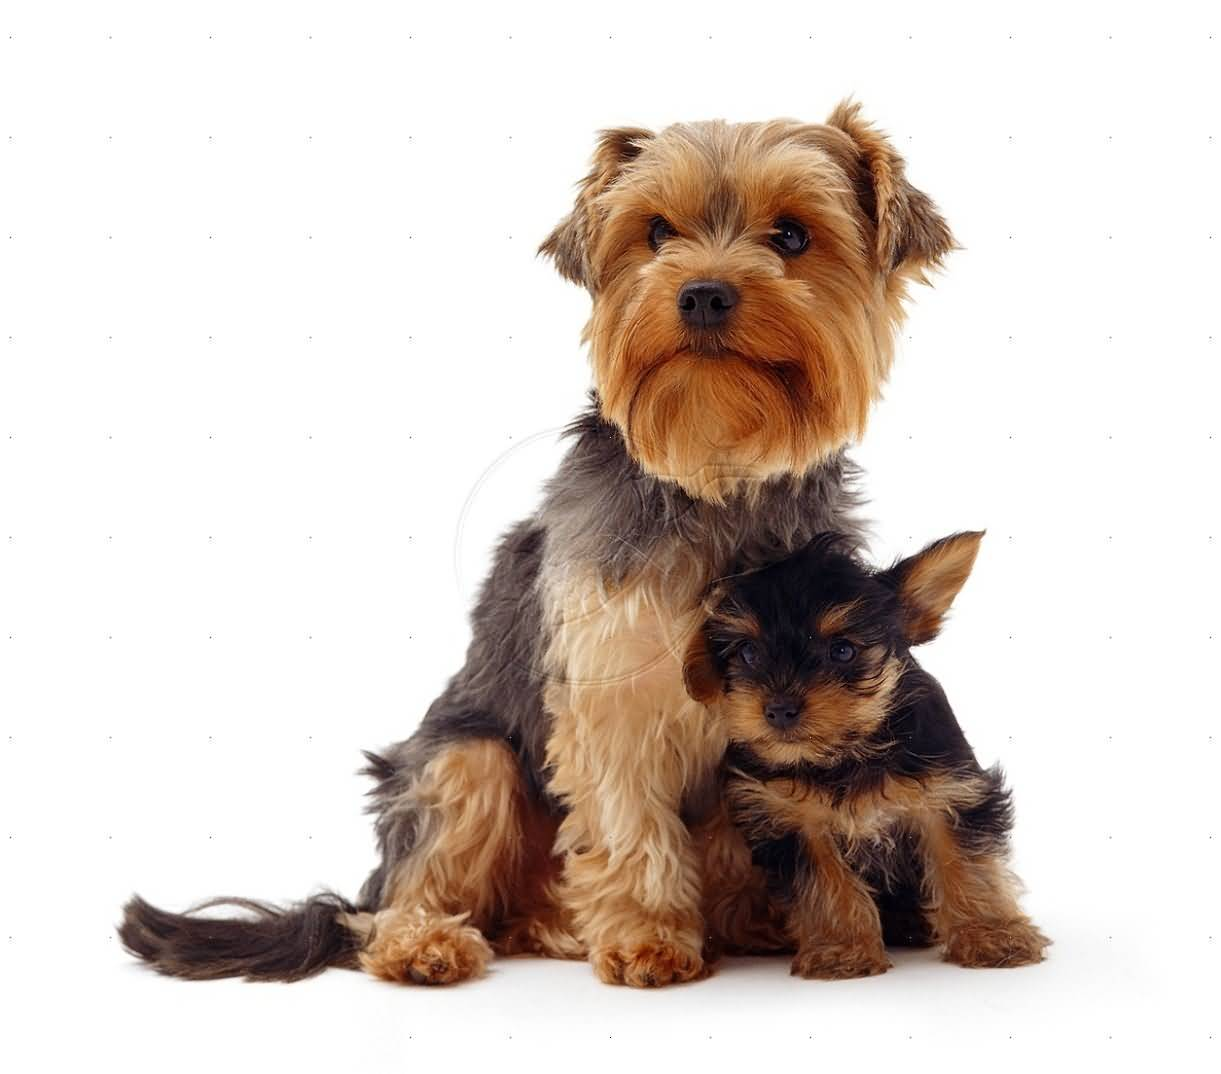 Wonderful Yorkshire Terrier Dog With His Small New Friend